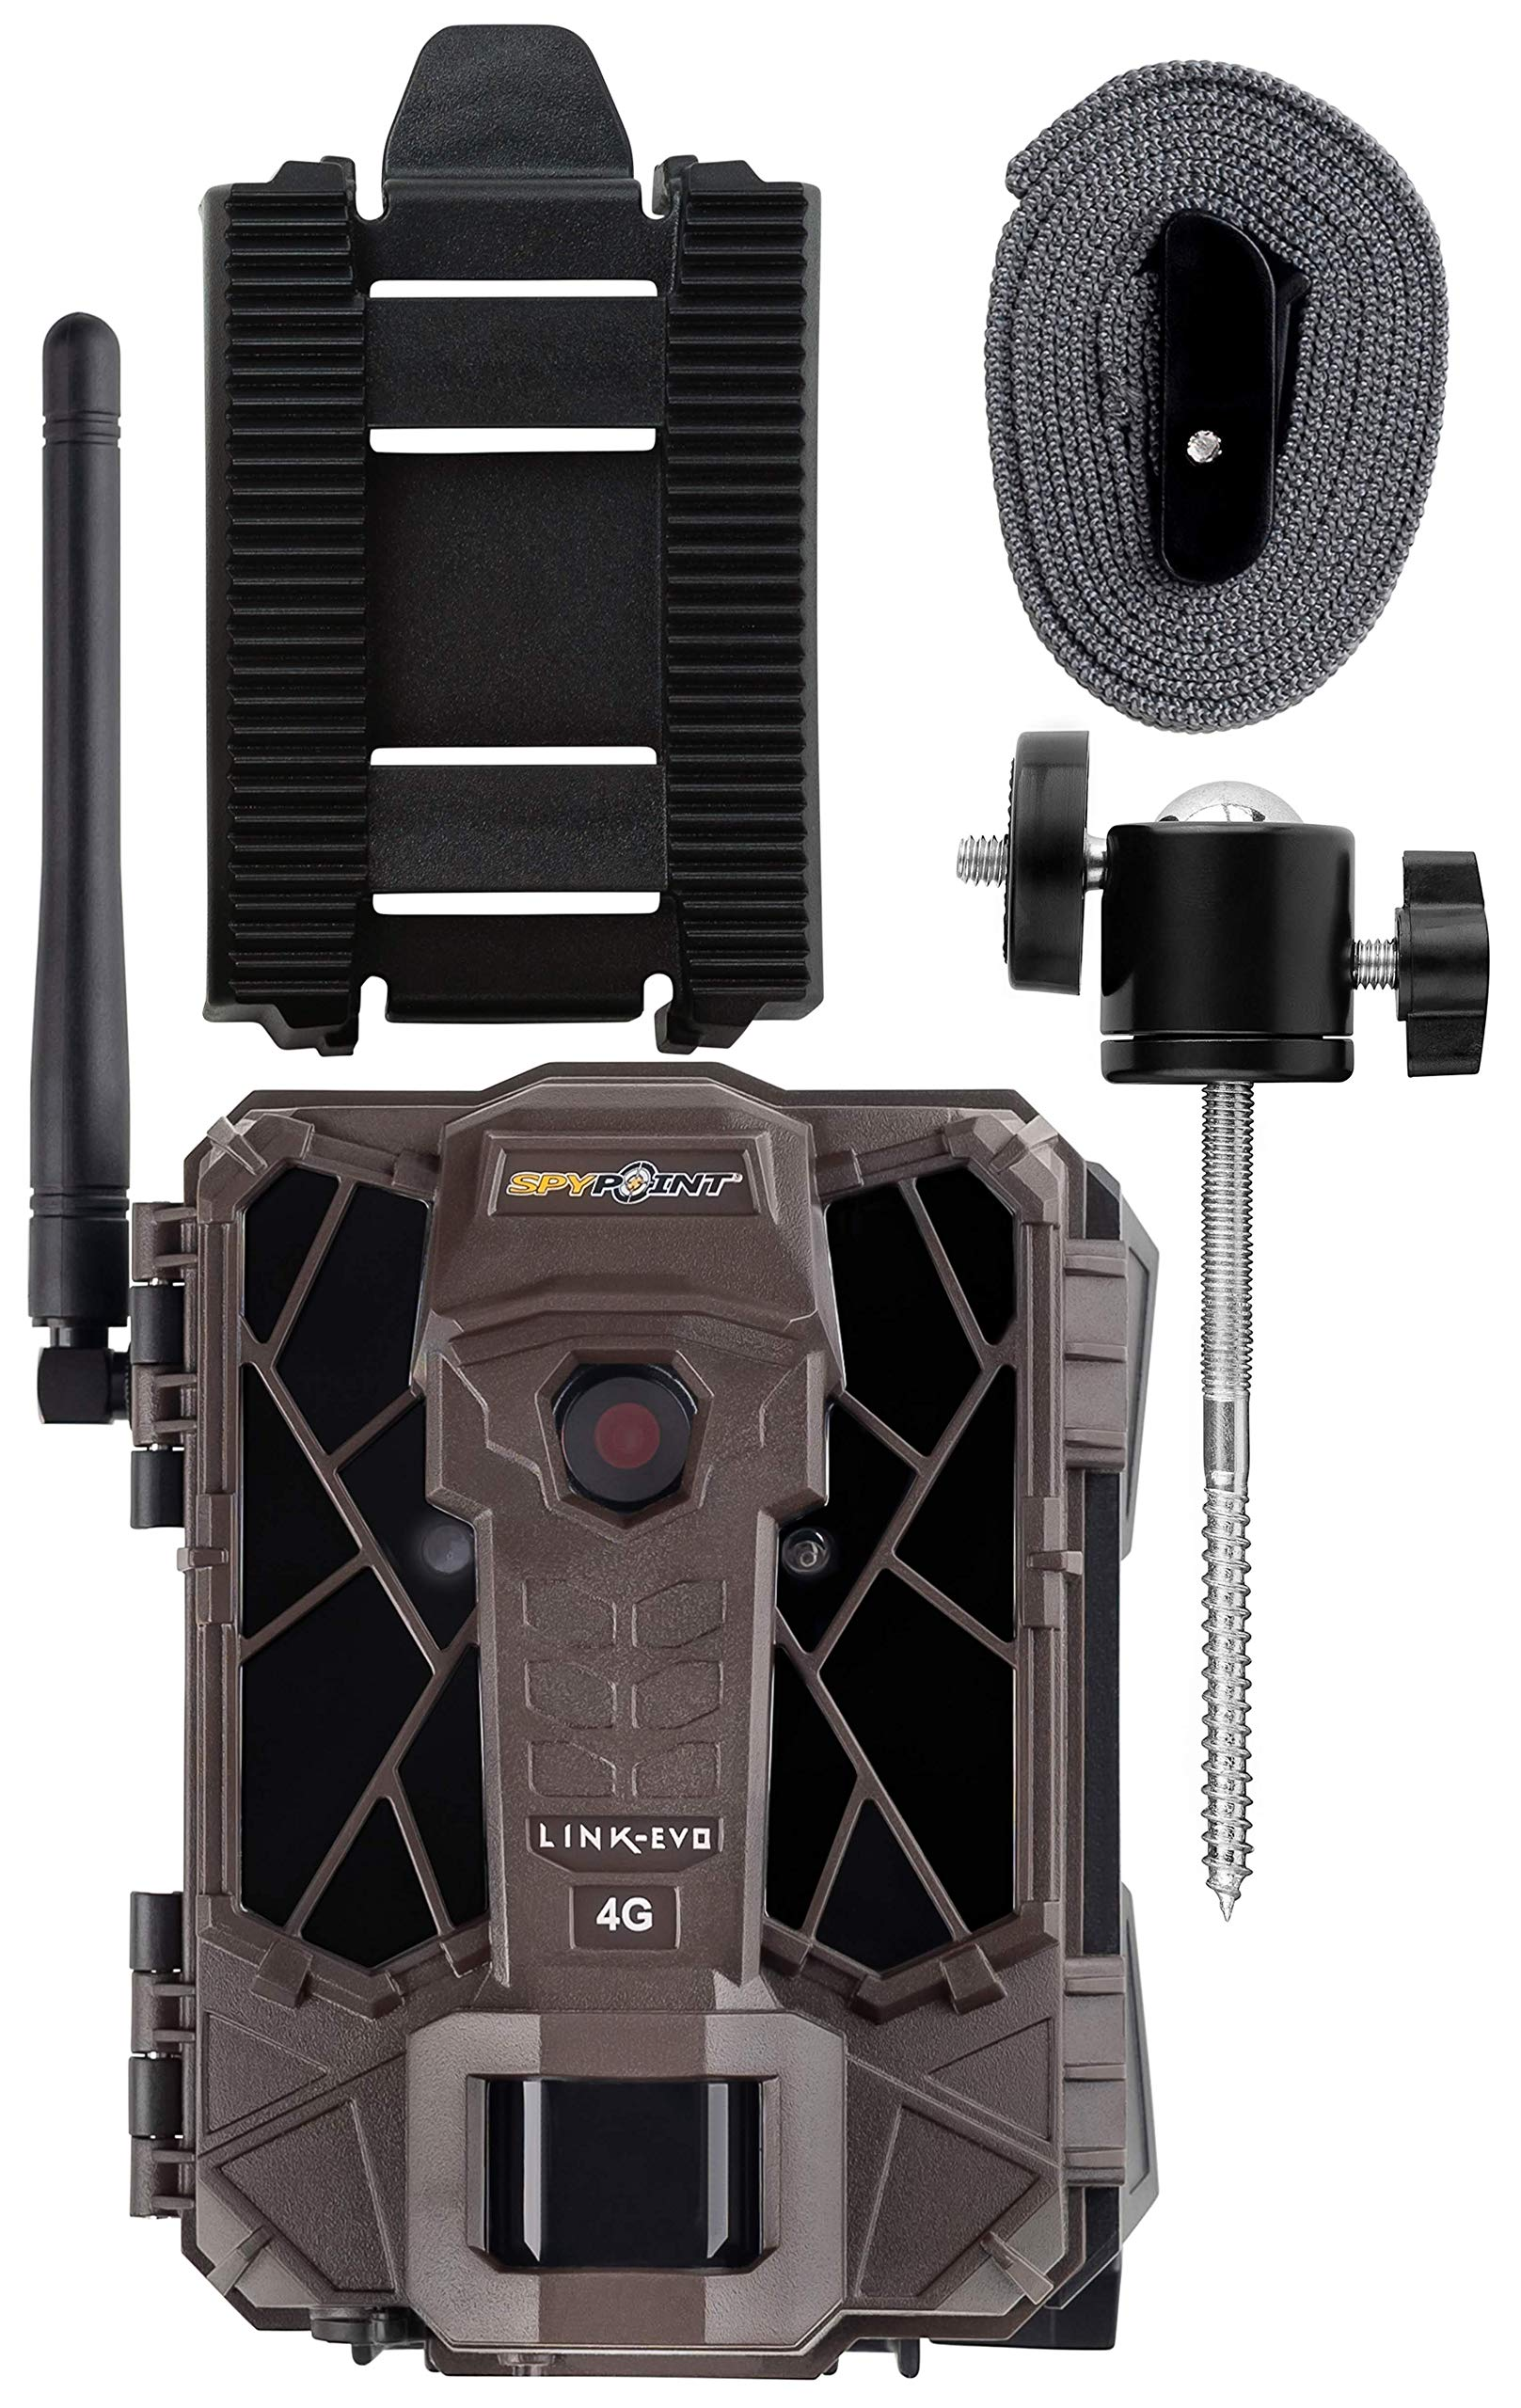 Spypoint Link-Evo-V Cellular Trail Camera with Mount by SPYPOINT